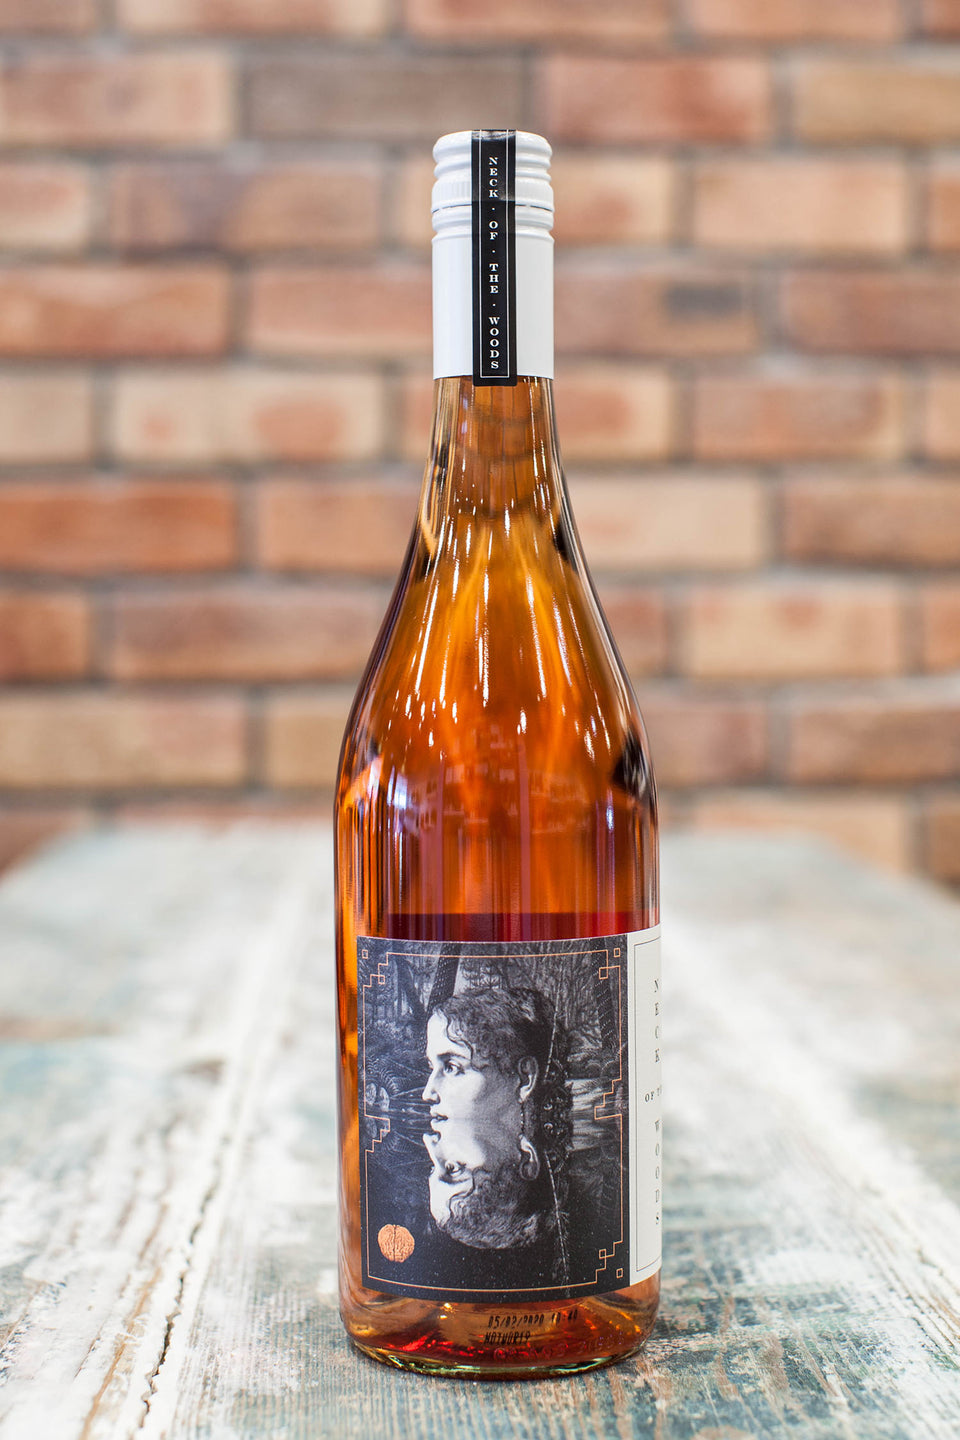 2019 Neck of the Woods 'Orange' Pinot Gris, Central Otago